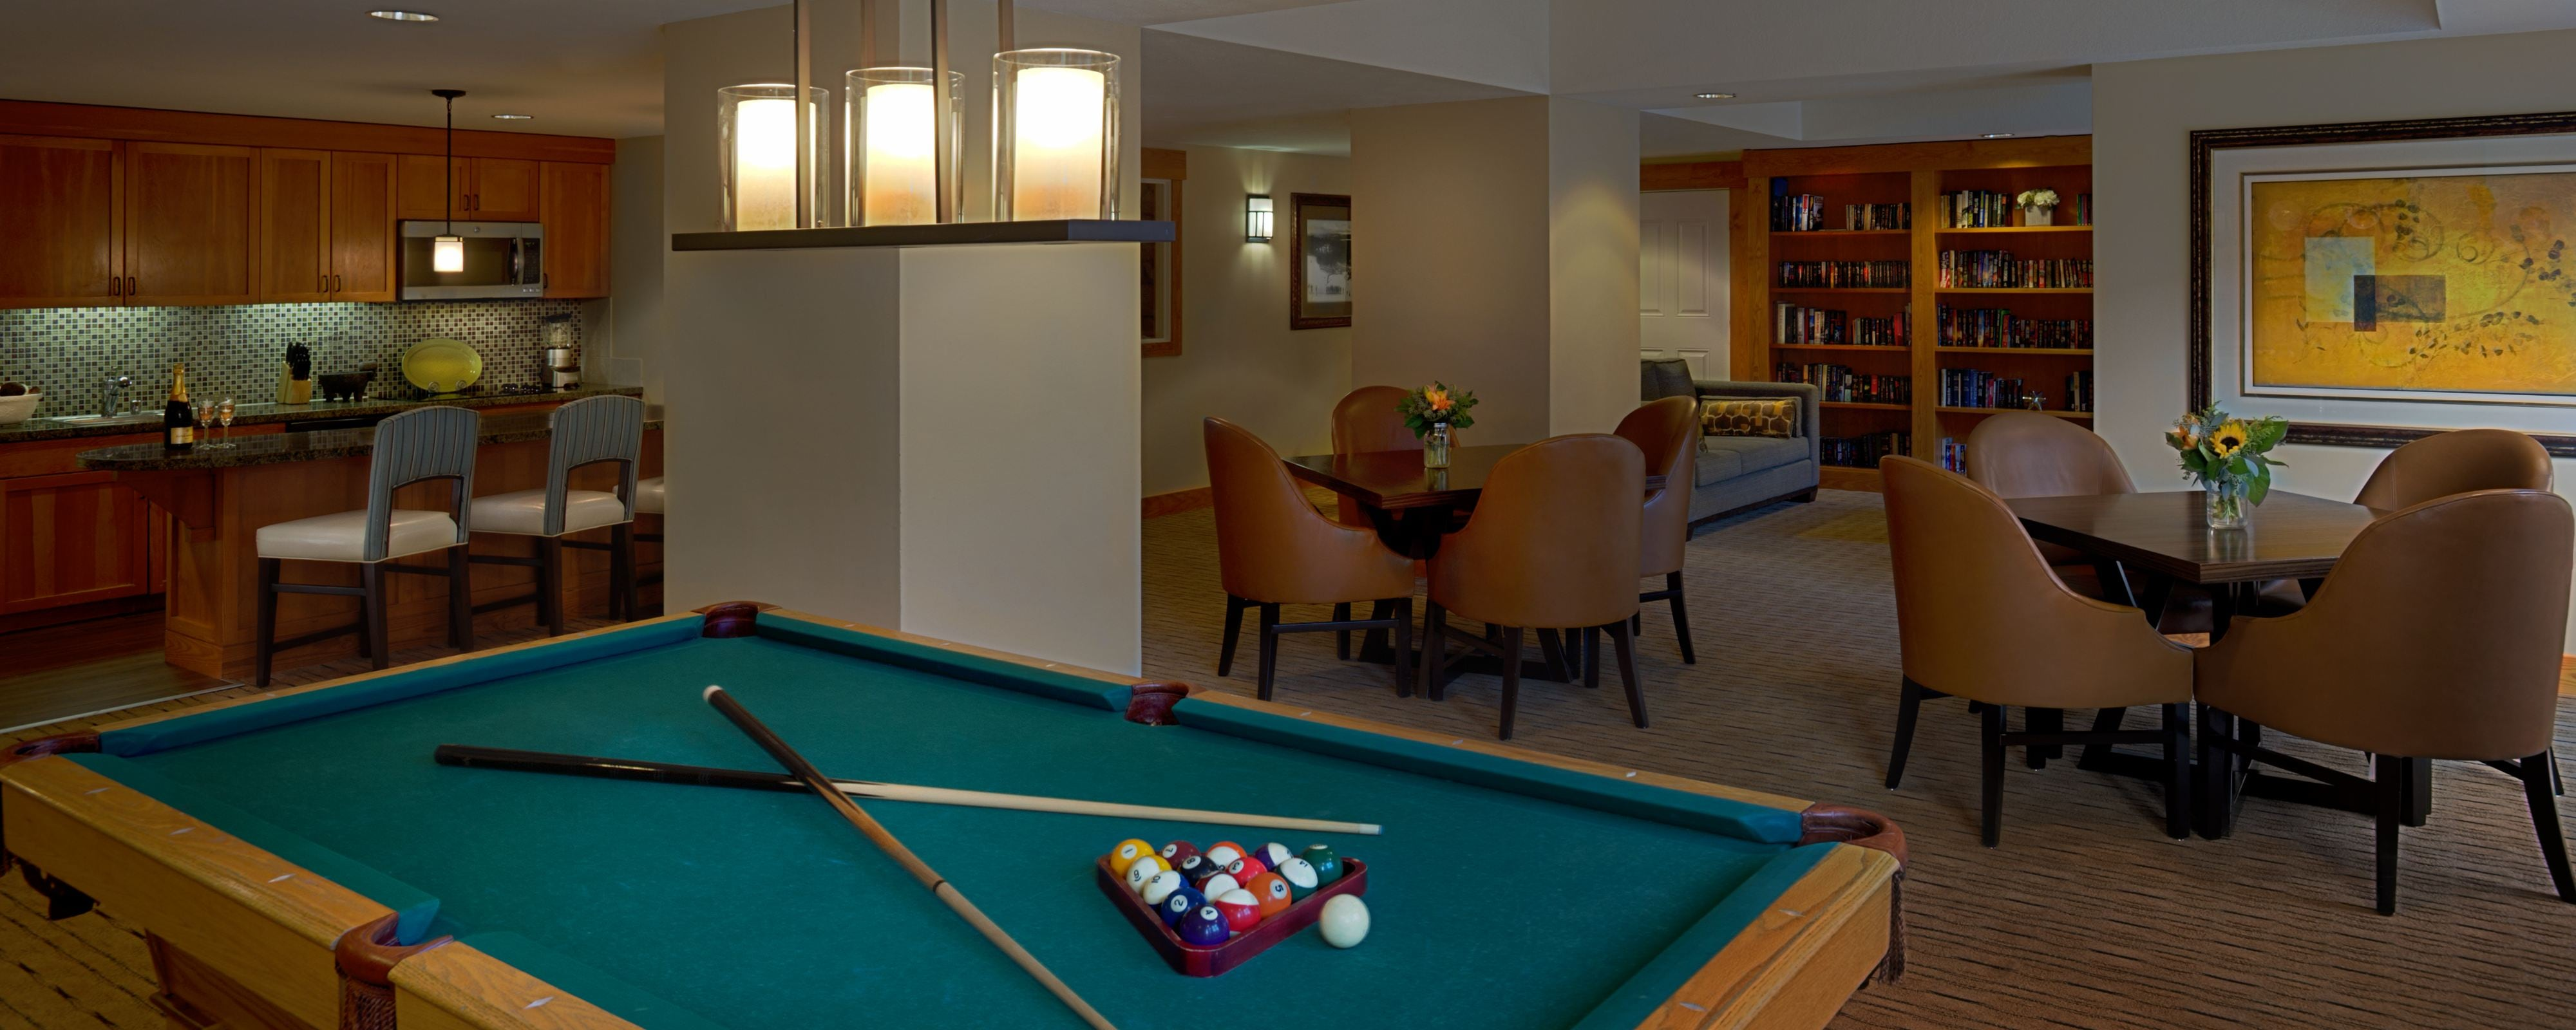 Lounge Billiards